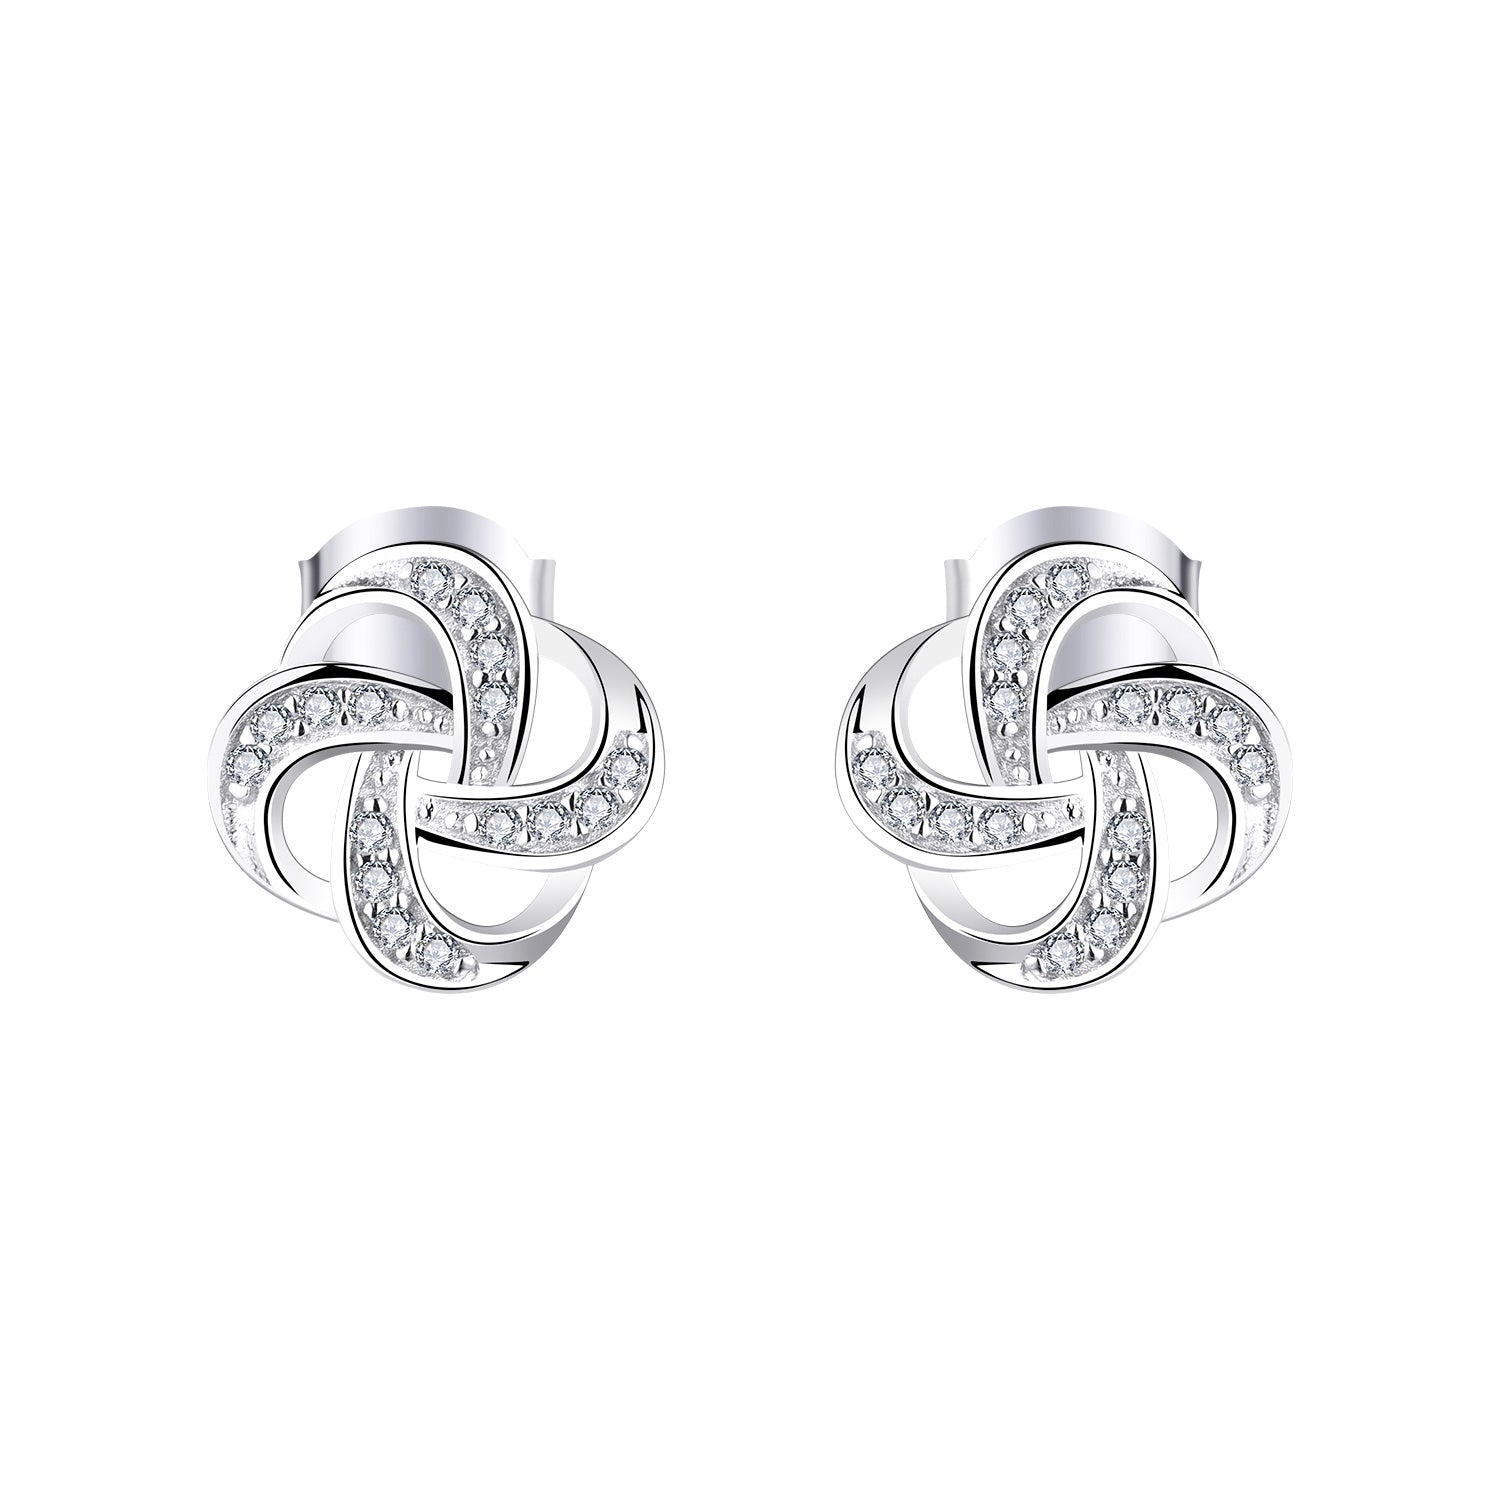 Farjary 925 Sterling Silver Knot Earrings With AAA CZ Wind Shape